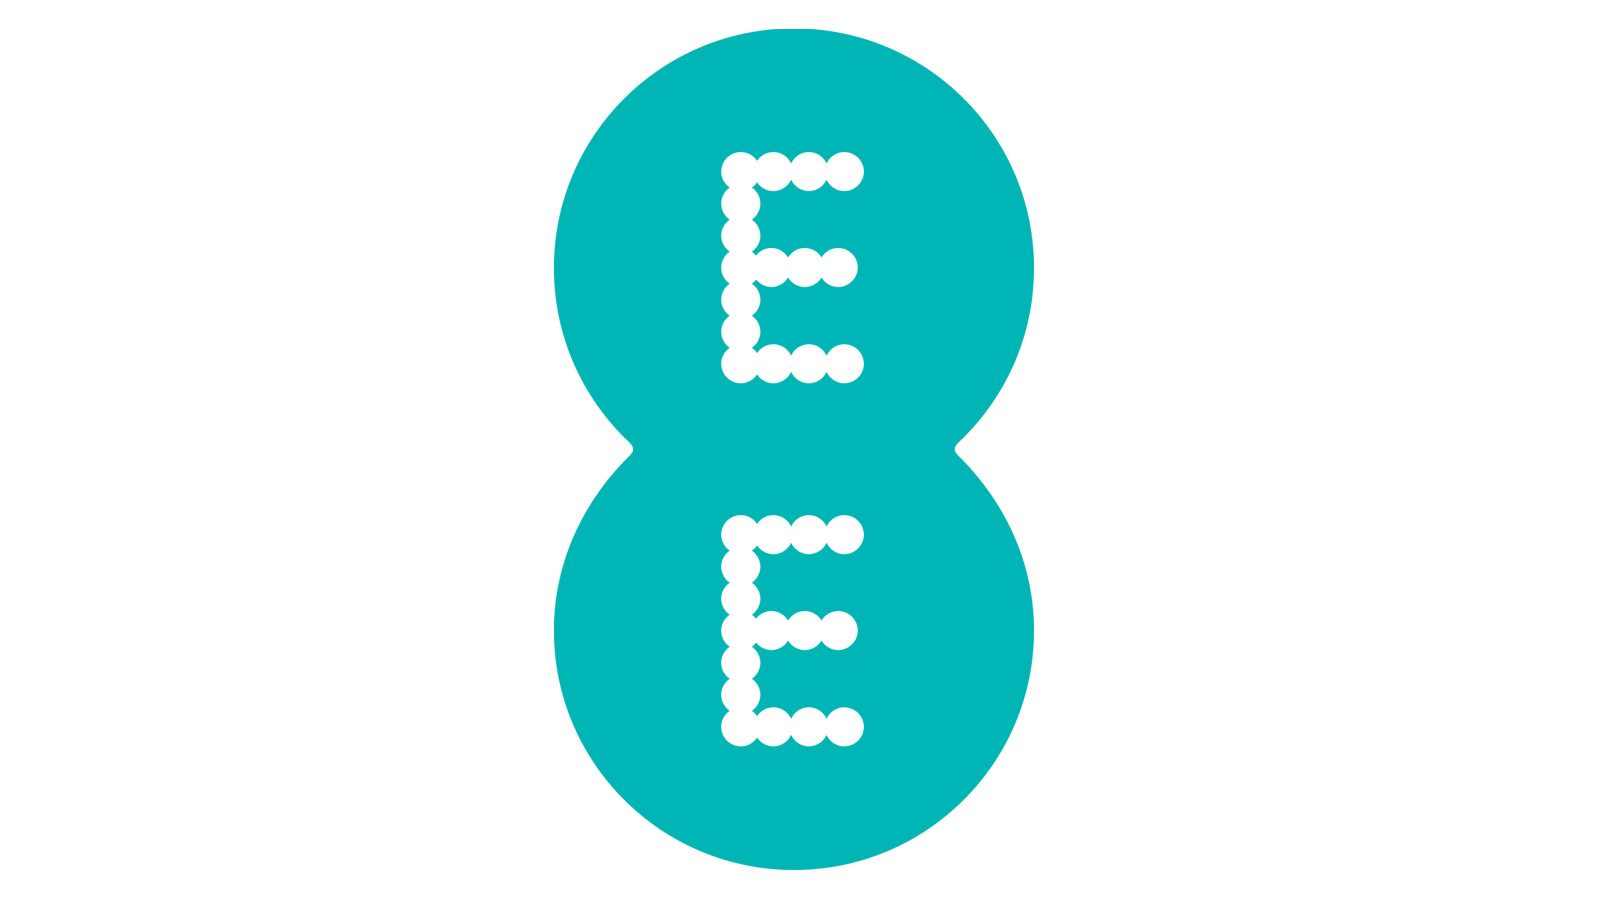 EE's missing Fair Use Policy